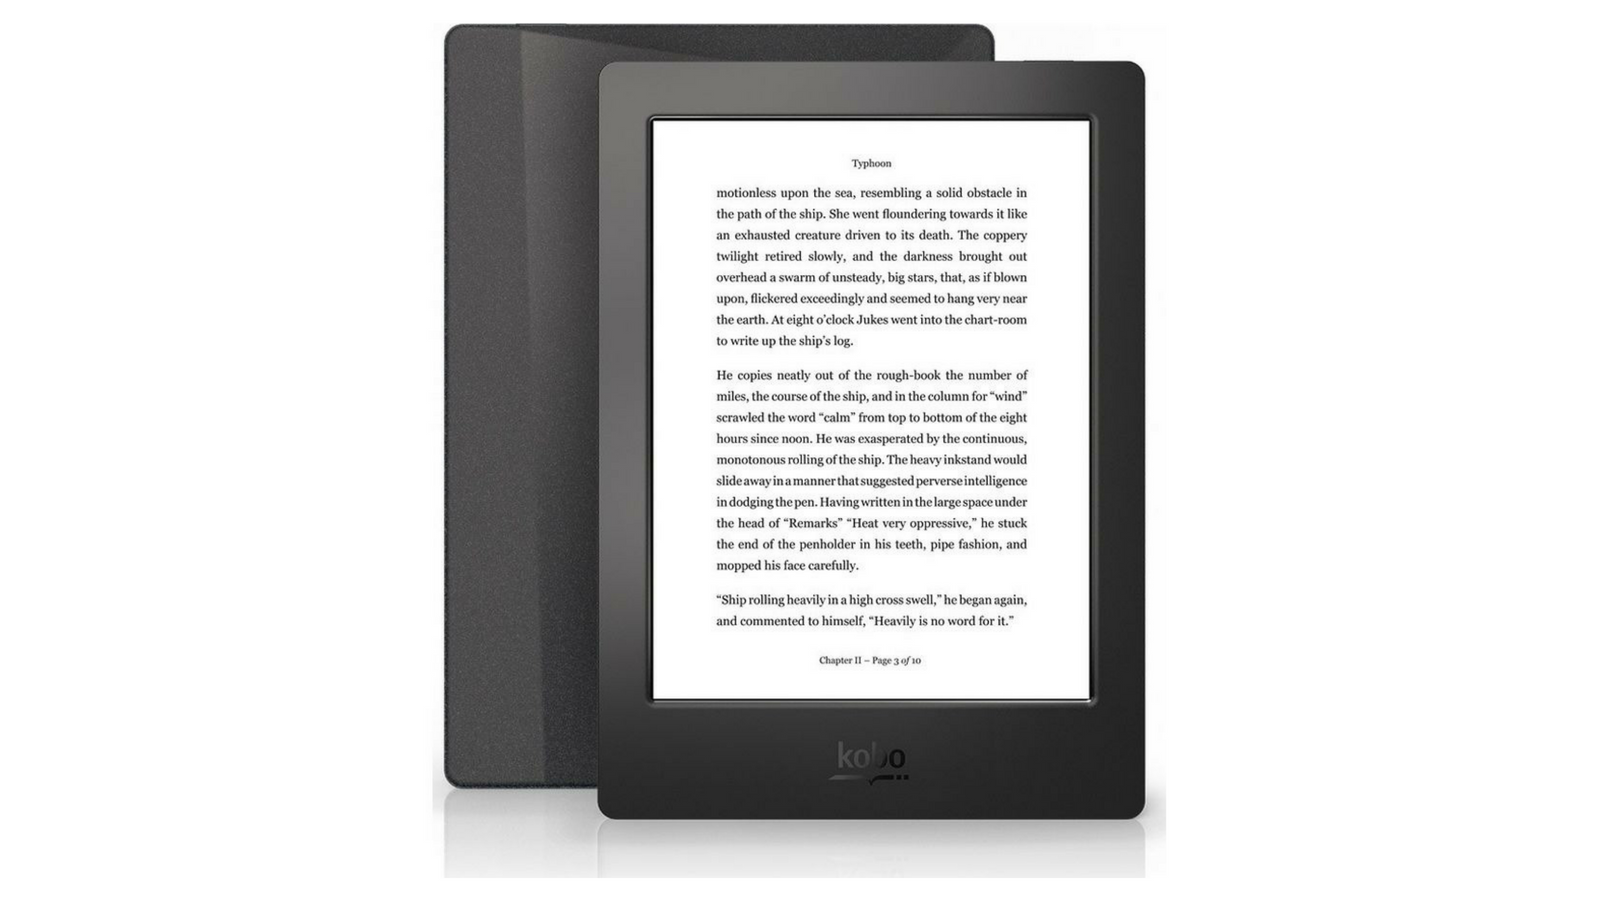 Best ebook reader to buy in 2018 kindle and kobo battle it out best ebook reader deal this month fandeluxe Choice Image